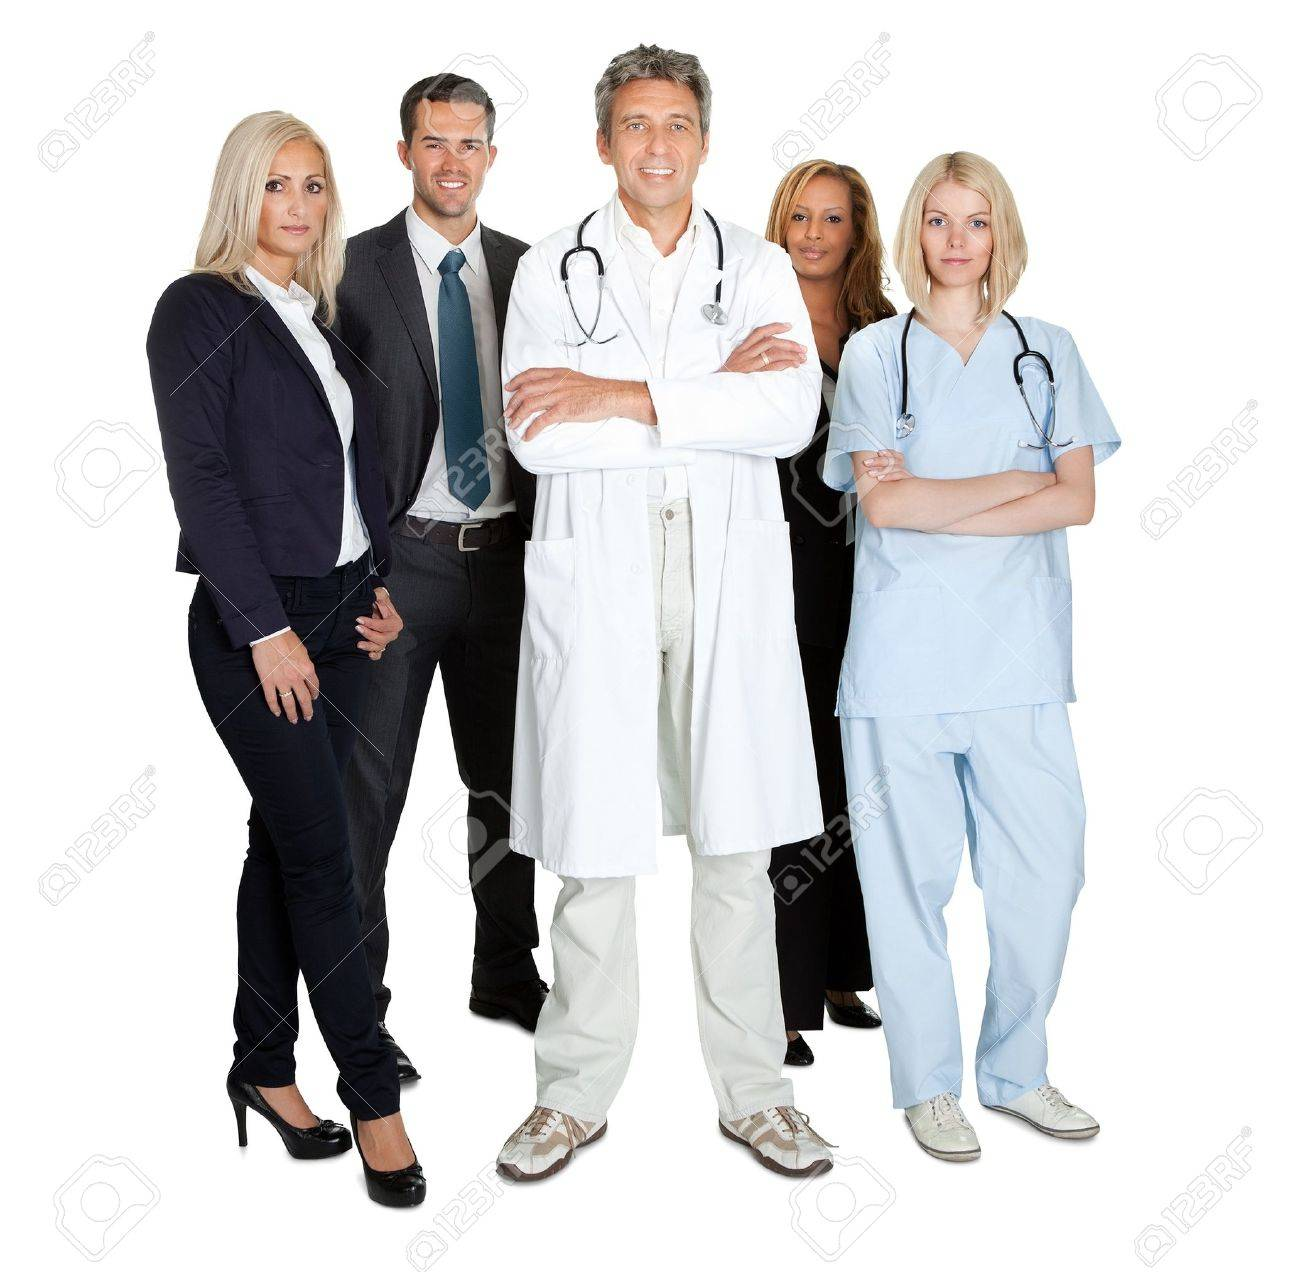 Portrait of a group of smiling working people isolated over white background Stock Photo - 11582331